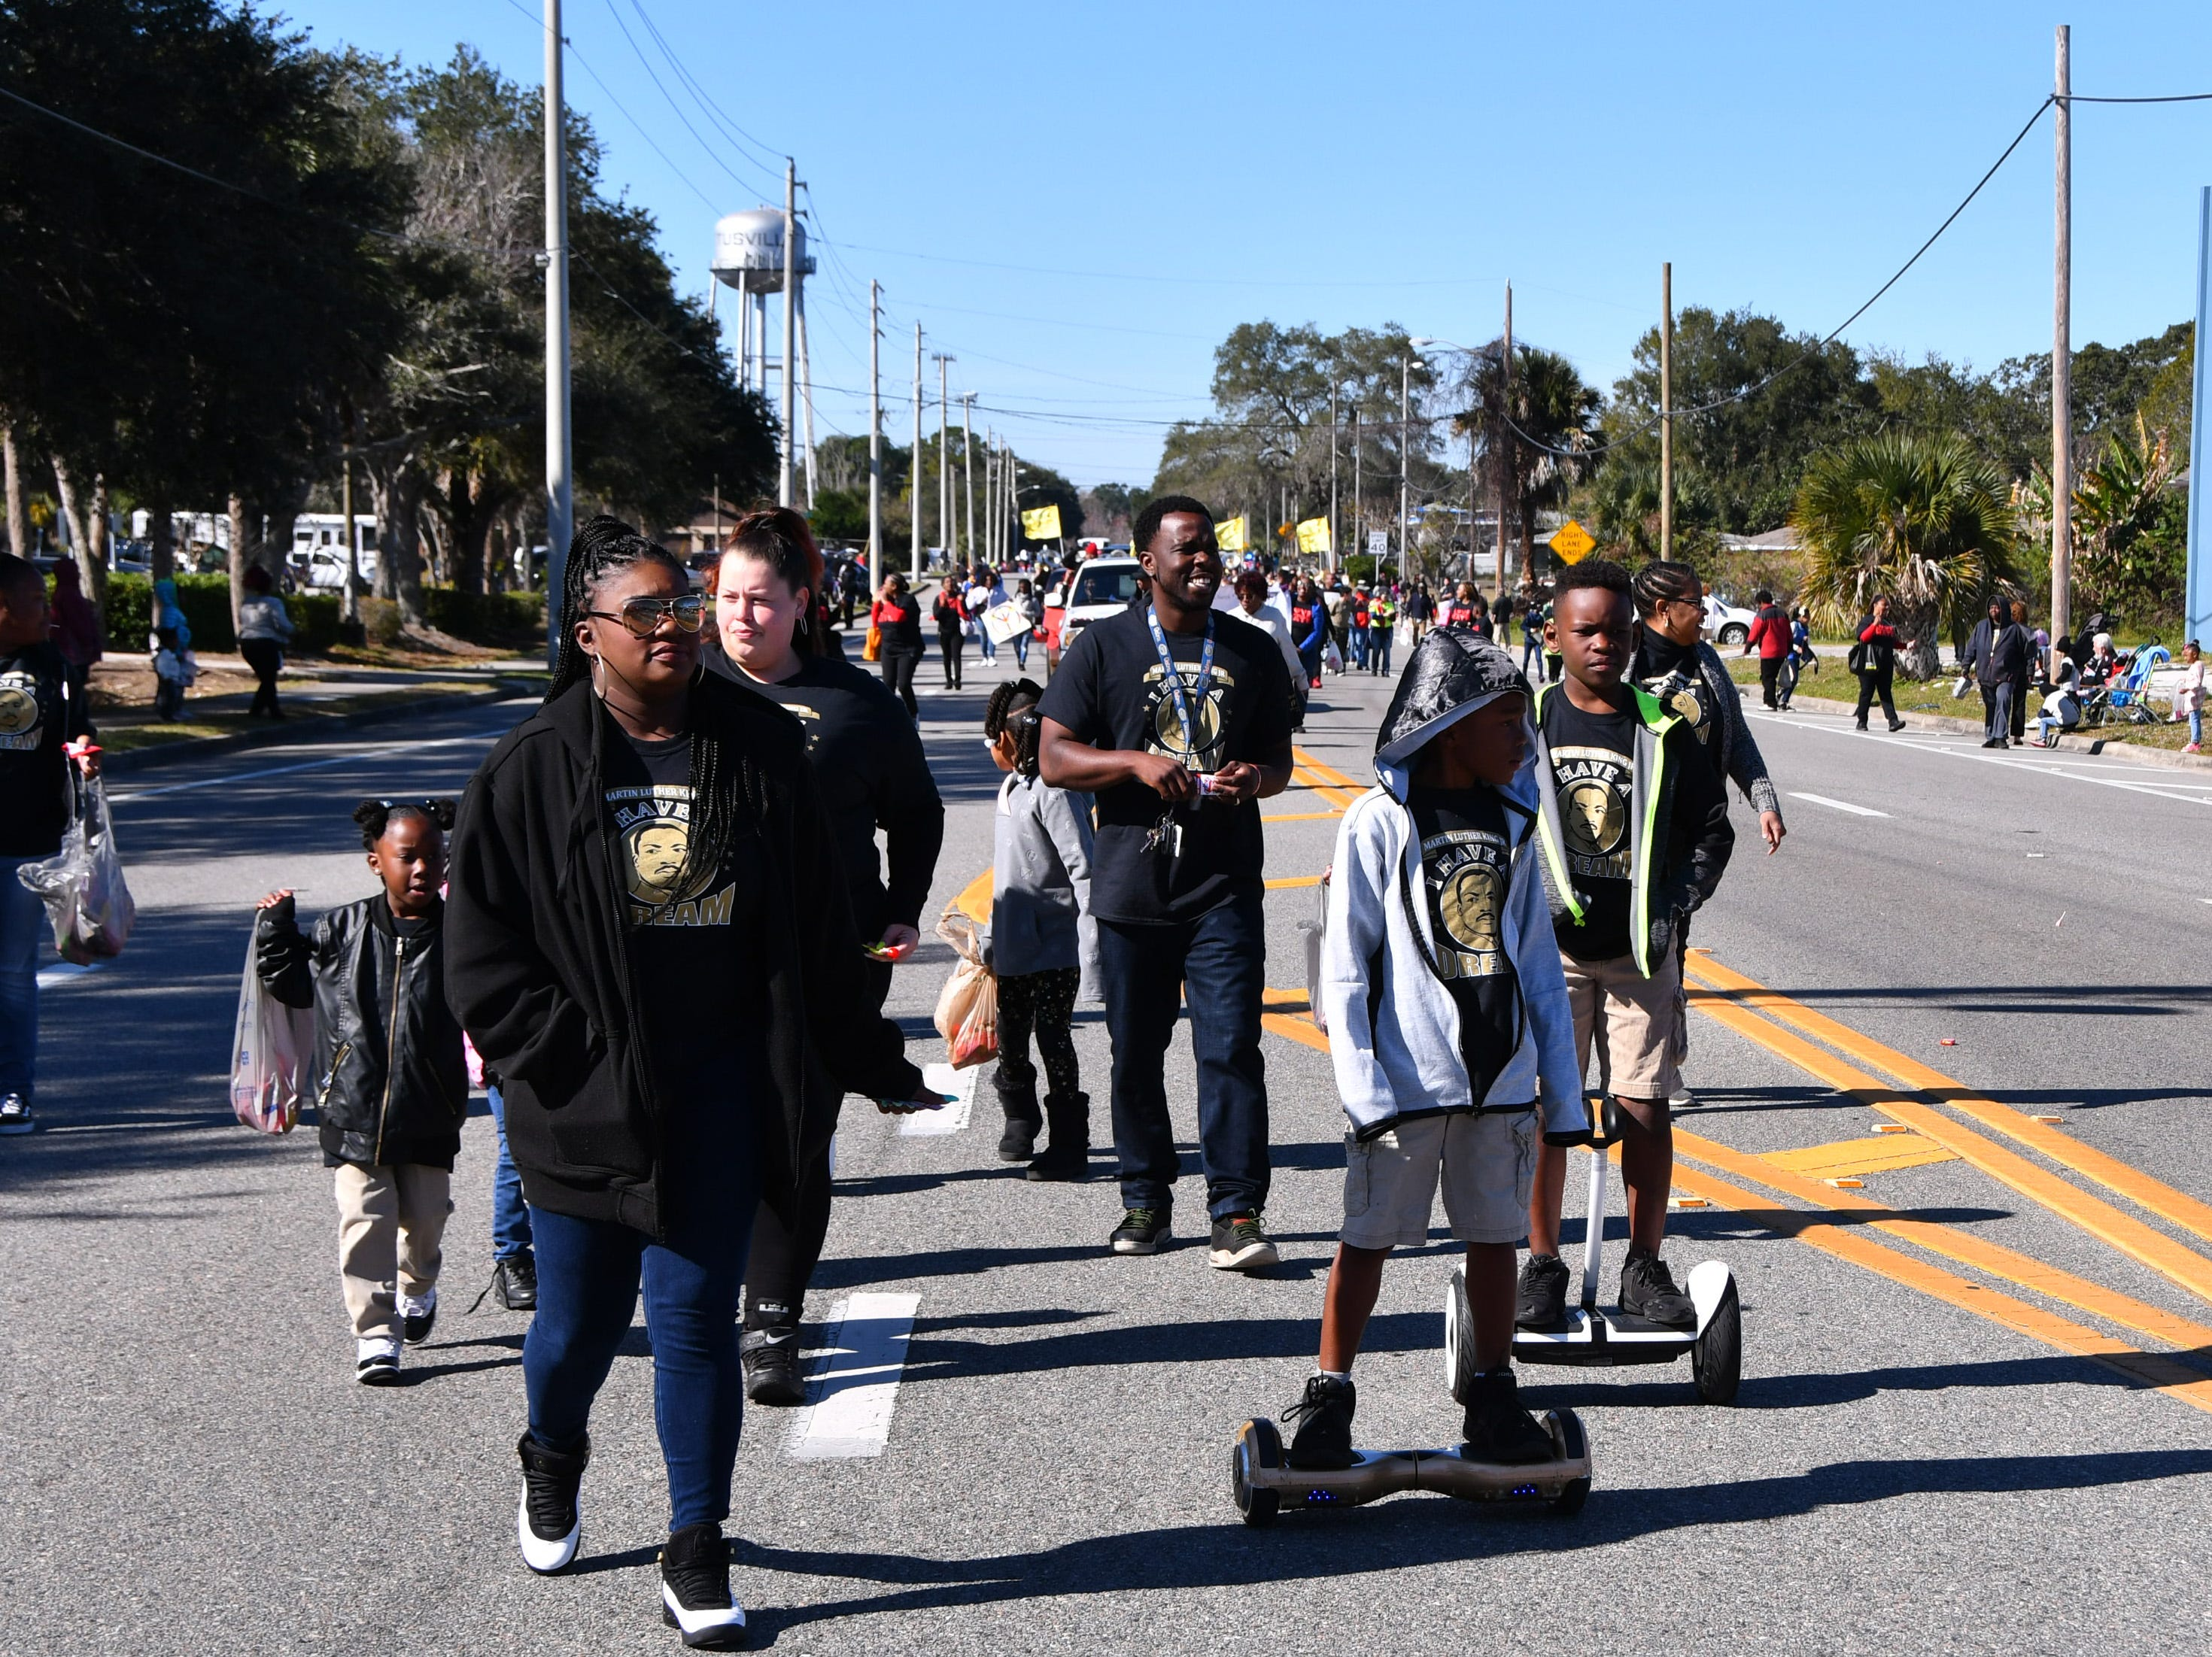 The North Brevard annual Dr. Martin Luther King Jr. Parade came east on South Street in Titusville at 11:00 a.m. , ending at the Heritage Festival with food and music  at Campbell Park in Titusville.